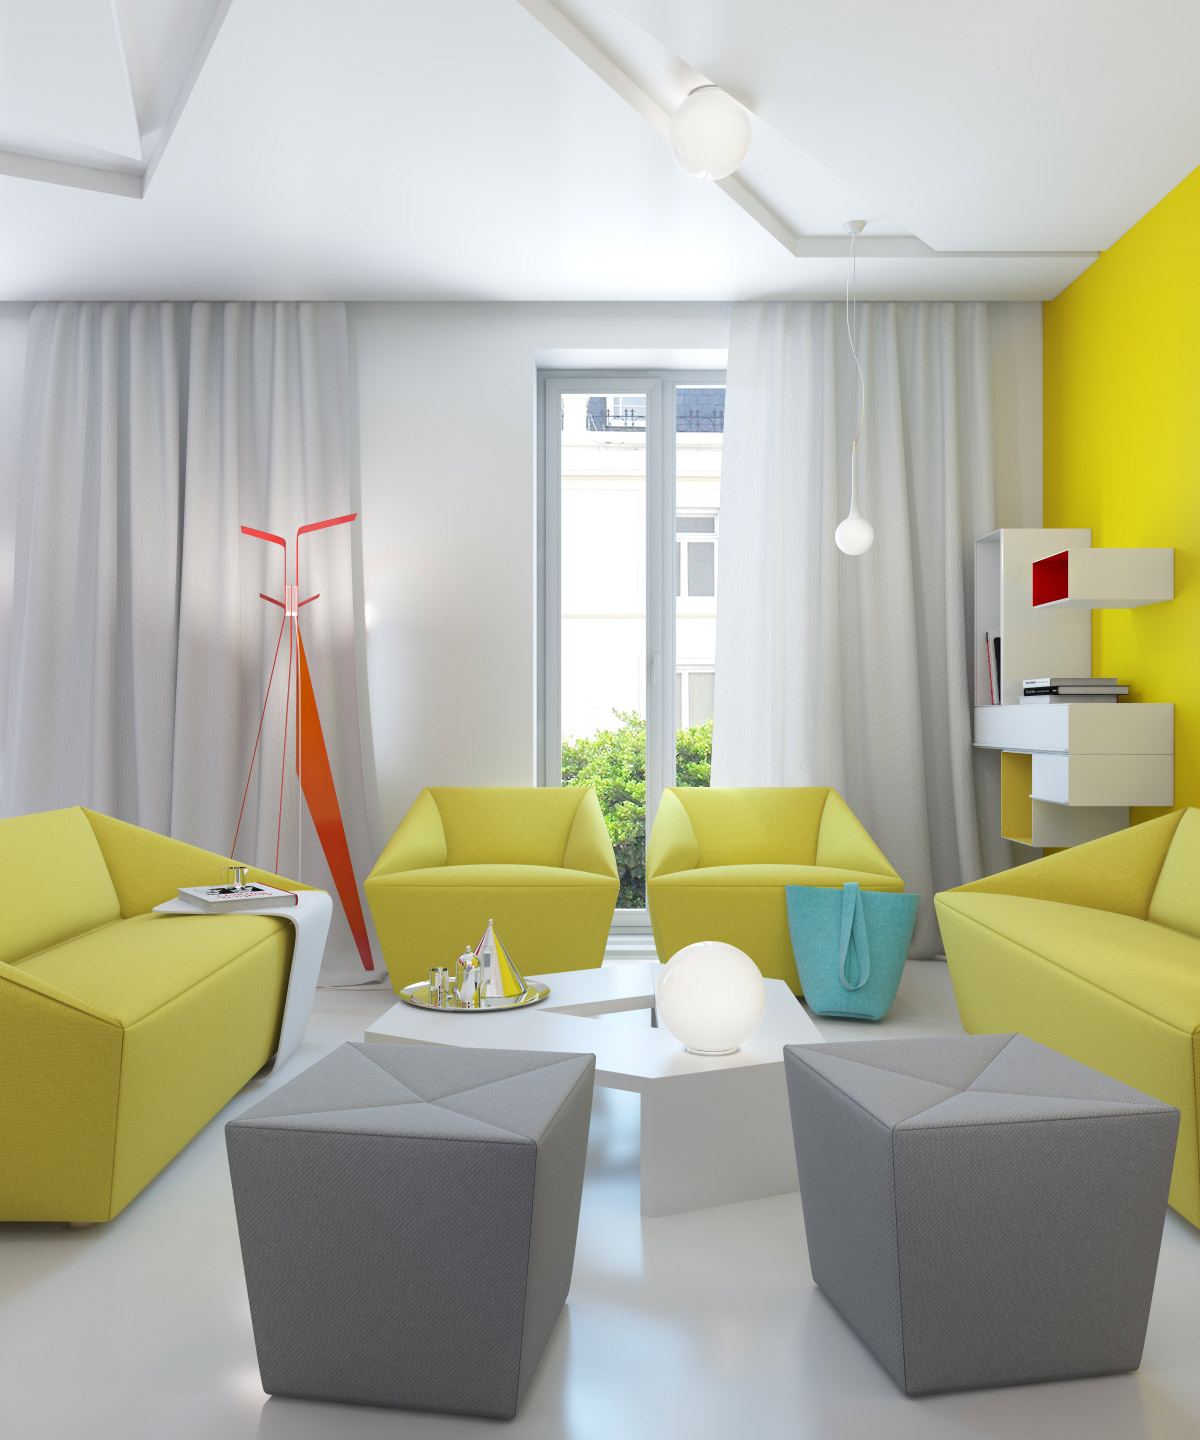 Yellow gray white modern living room interior design ideas for Yellow modern living room ideas